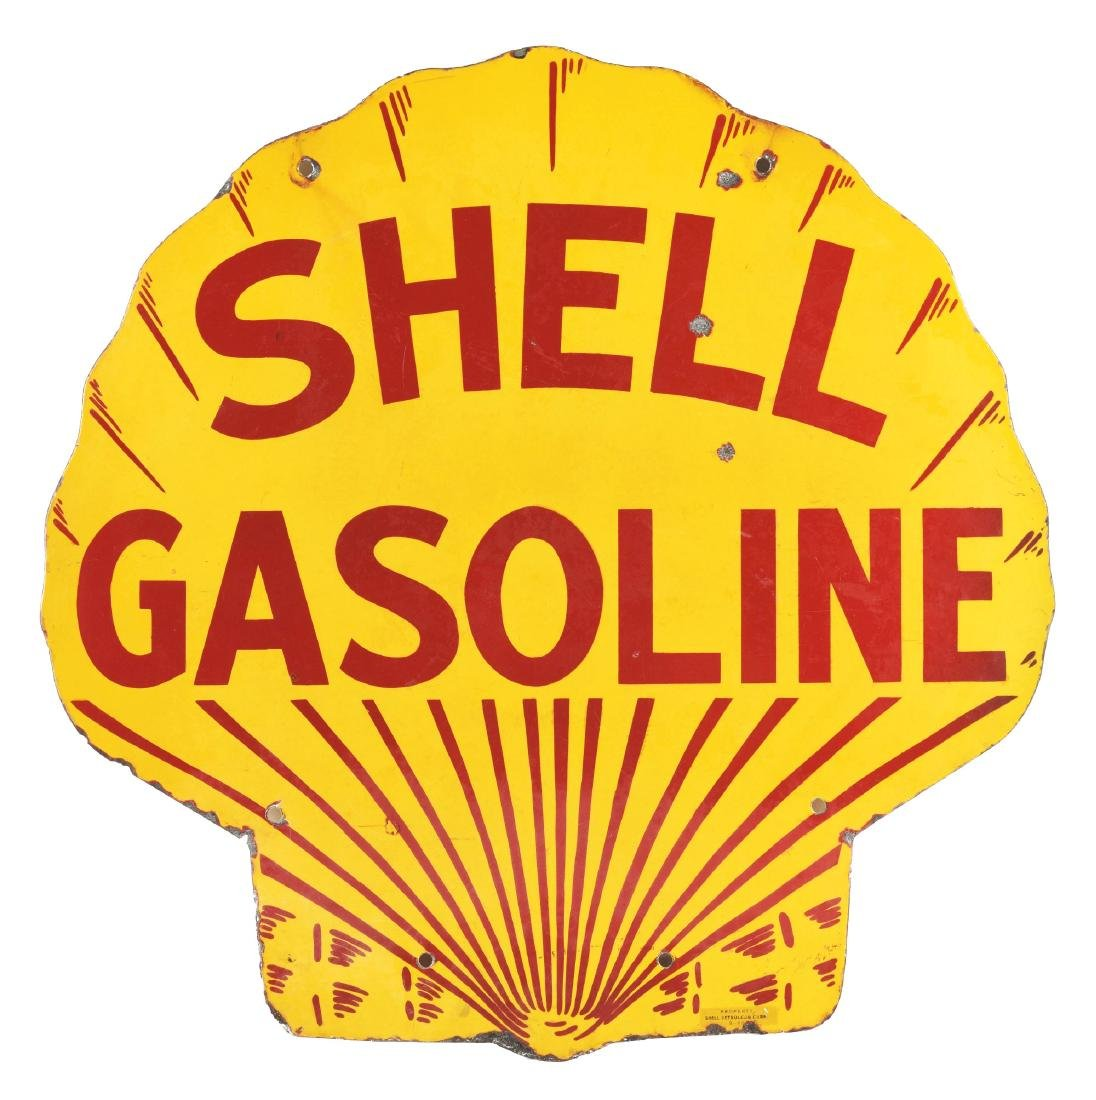 Shell Gasoline Porcelain Clamshell Shaped Curb Sign.